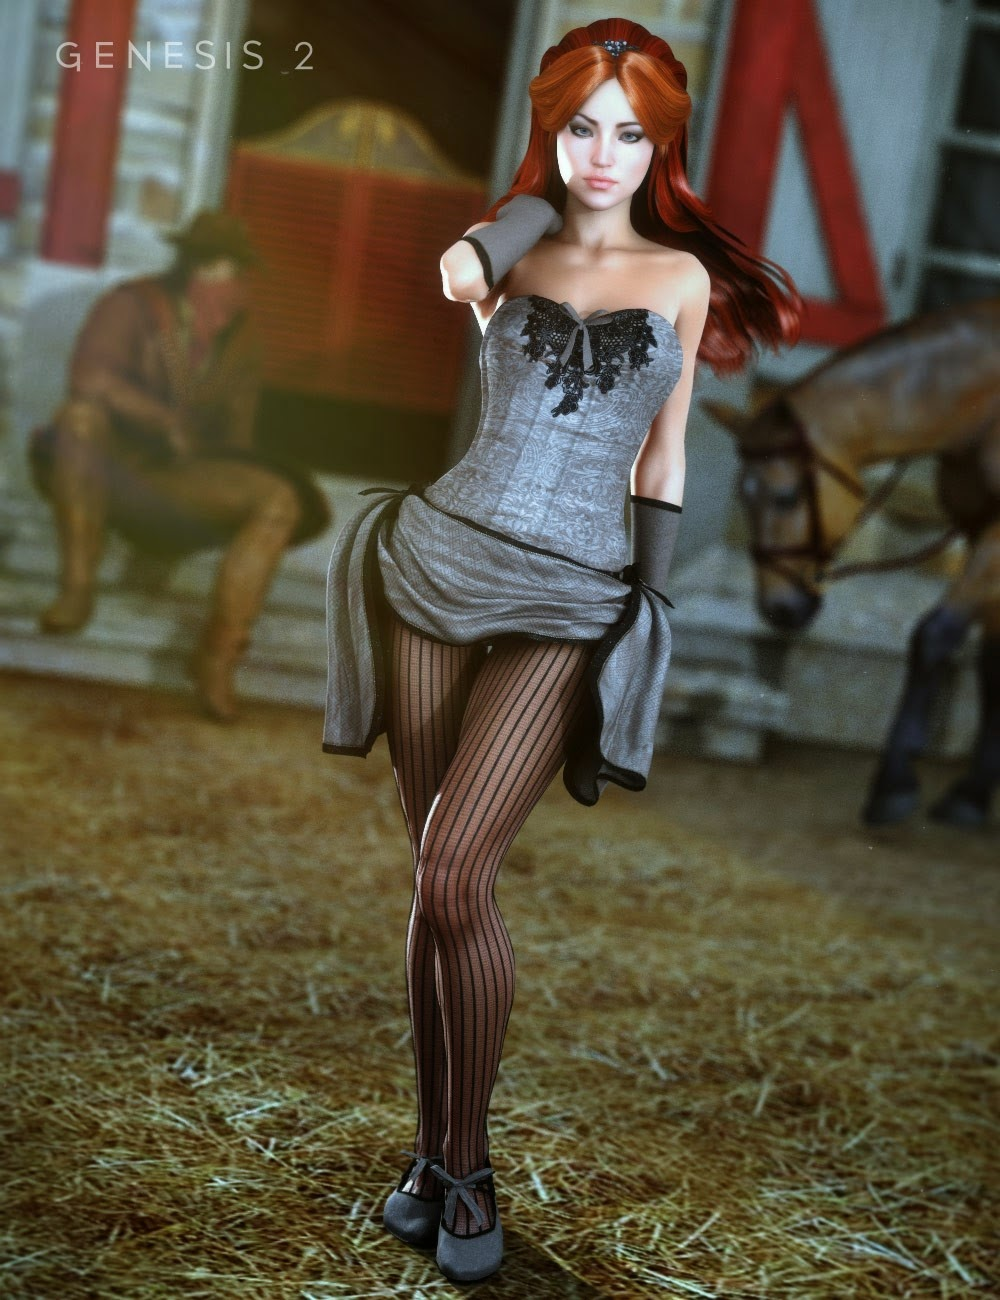 Daz3d For Genesis 2 female